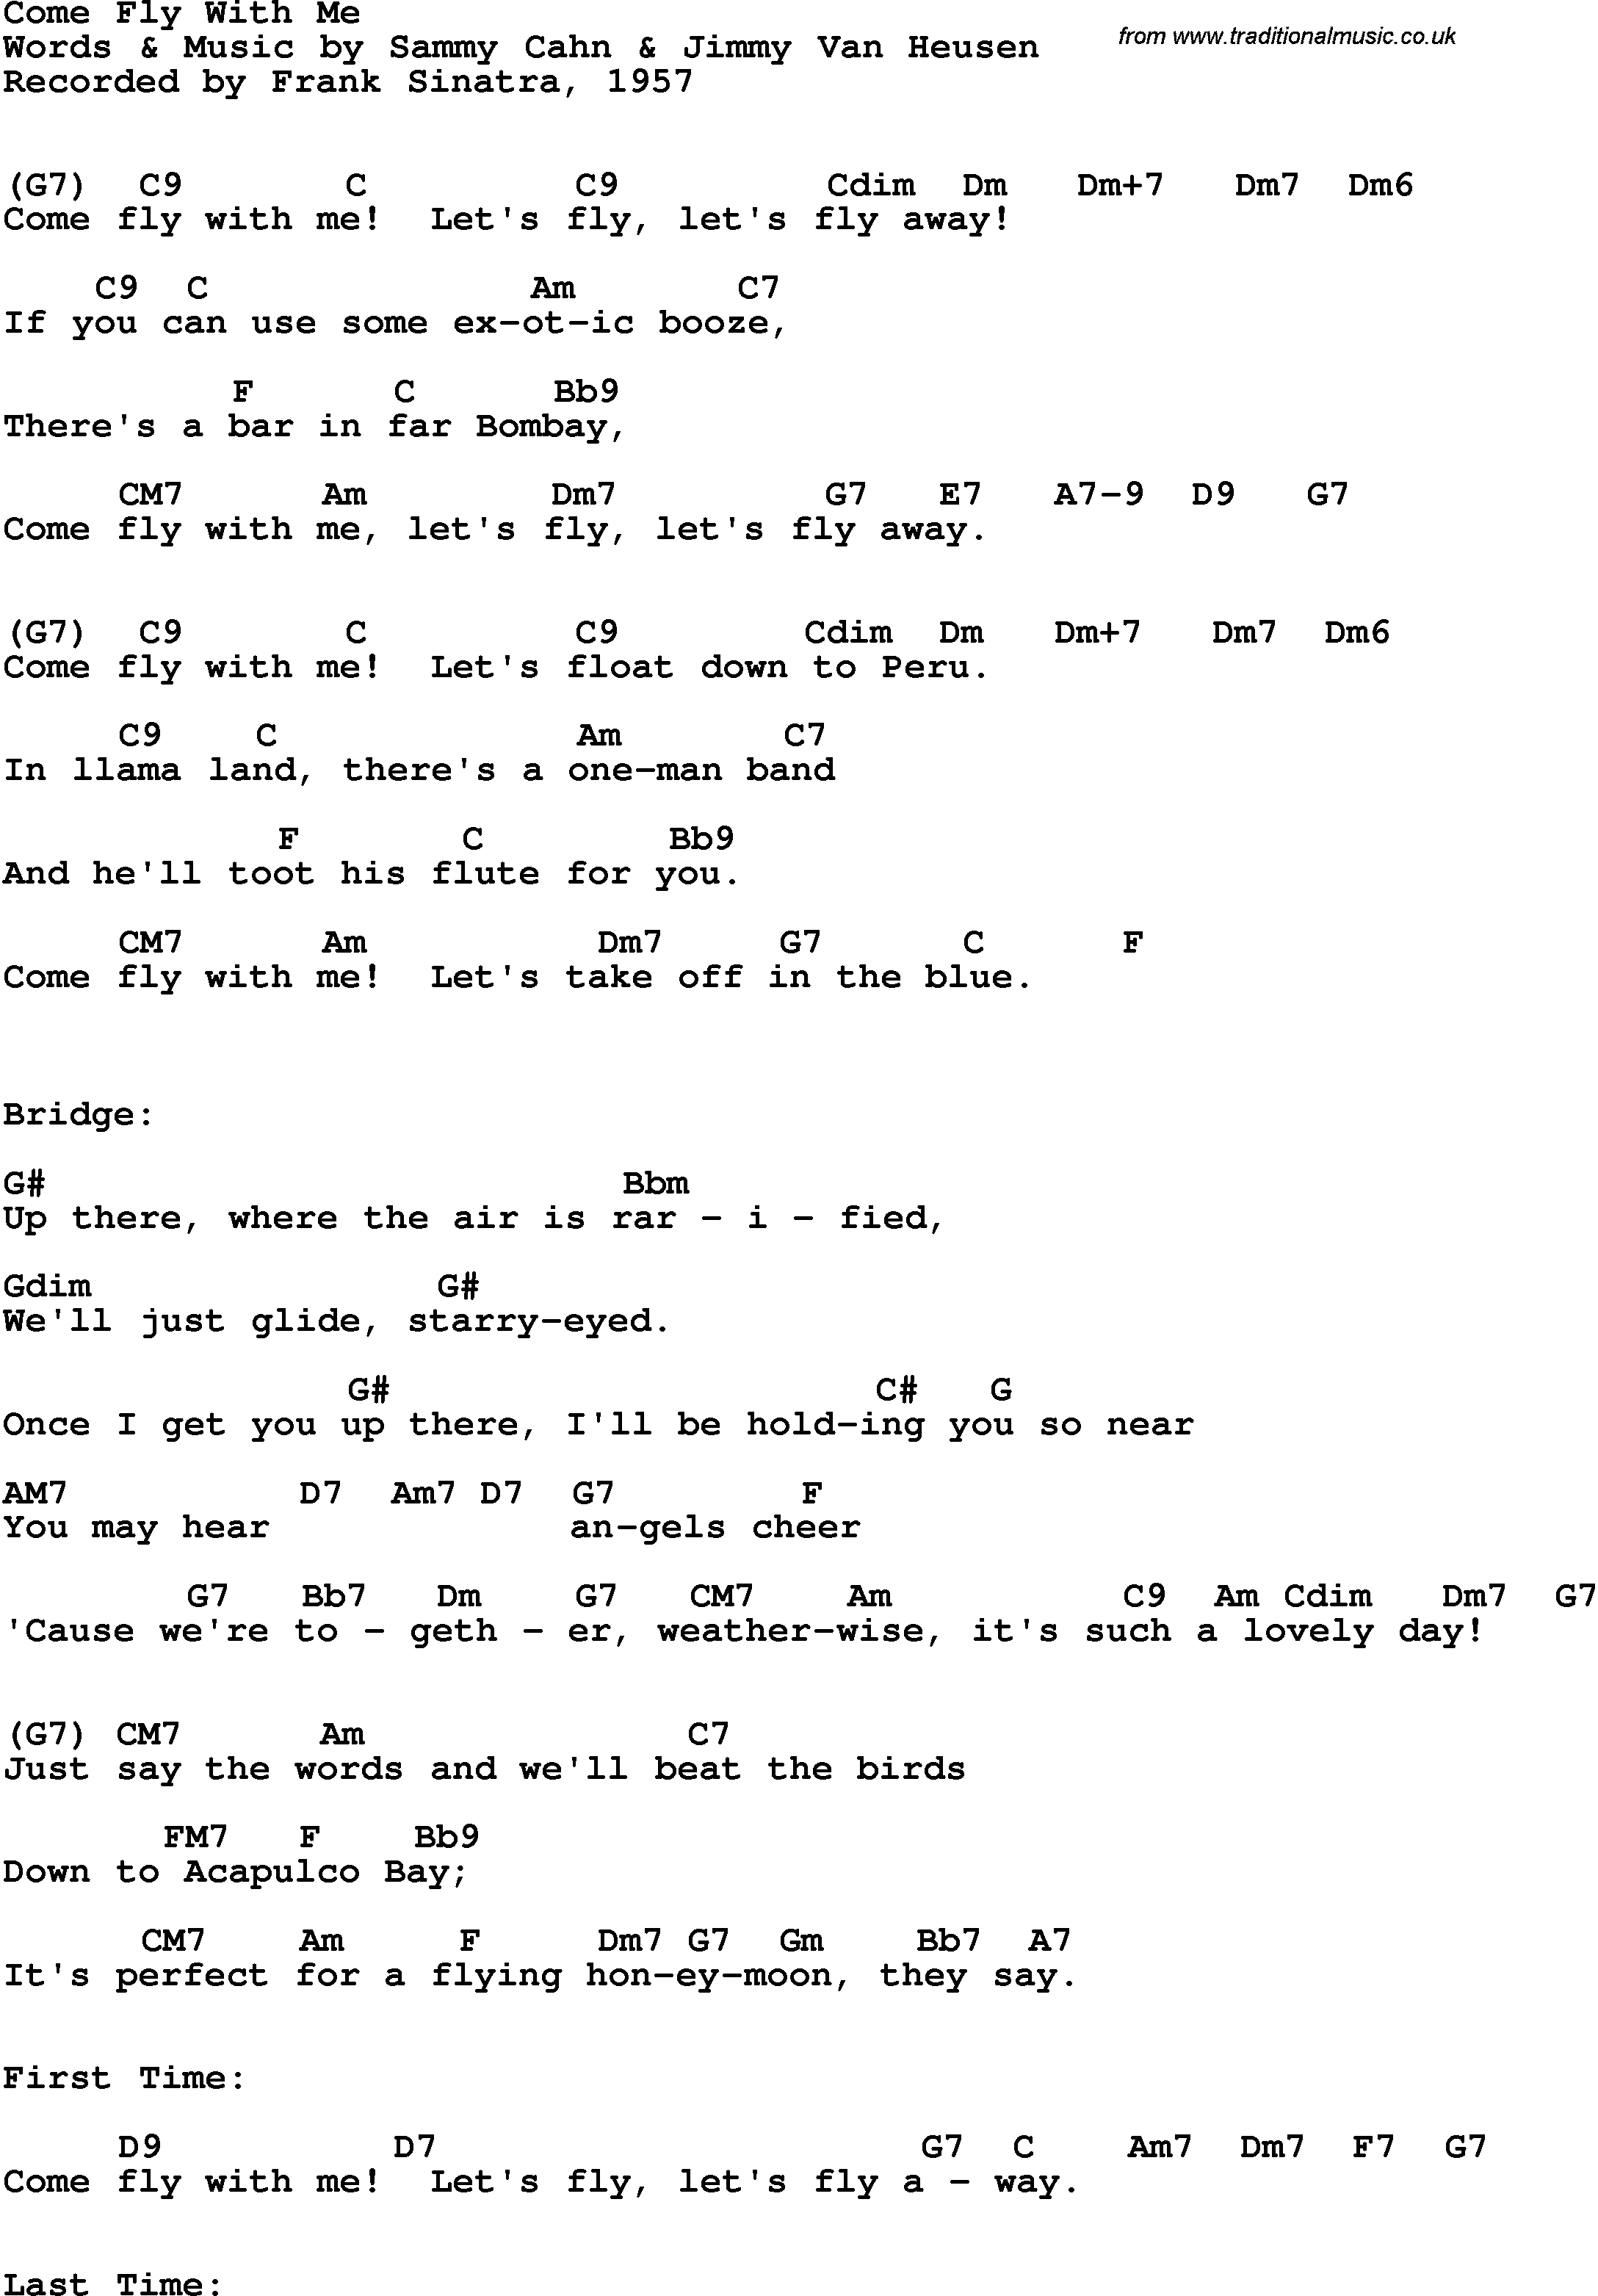 Song Lyrics With Guitar Chords For Come Fly With Me Frank Sinatra